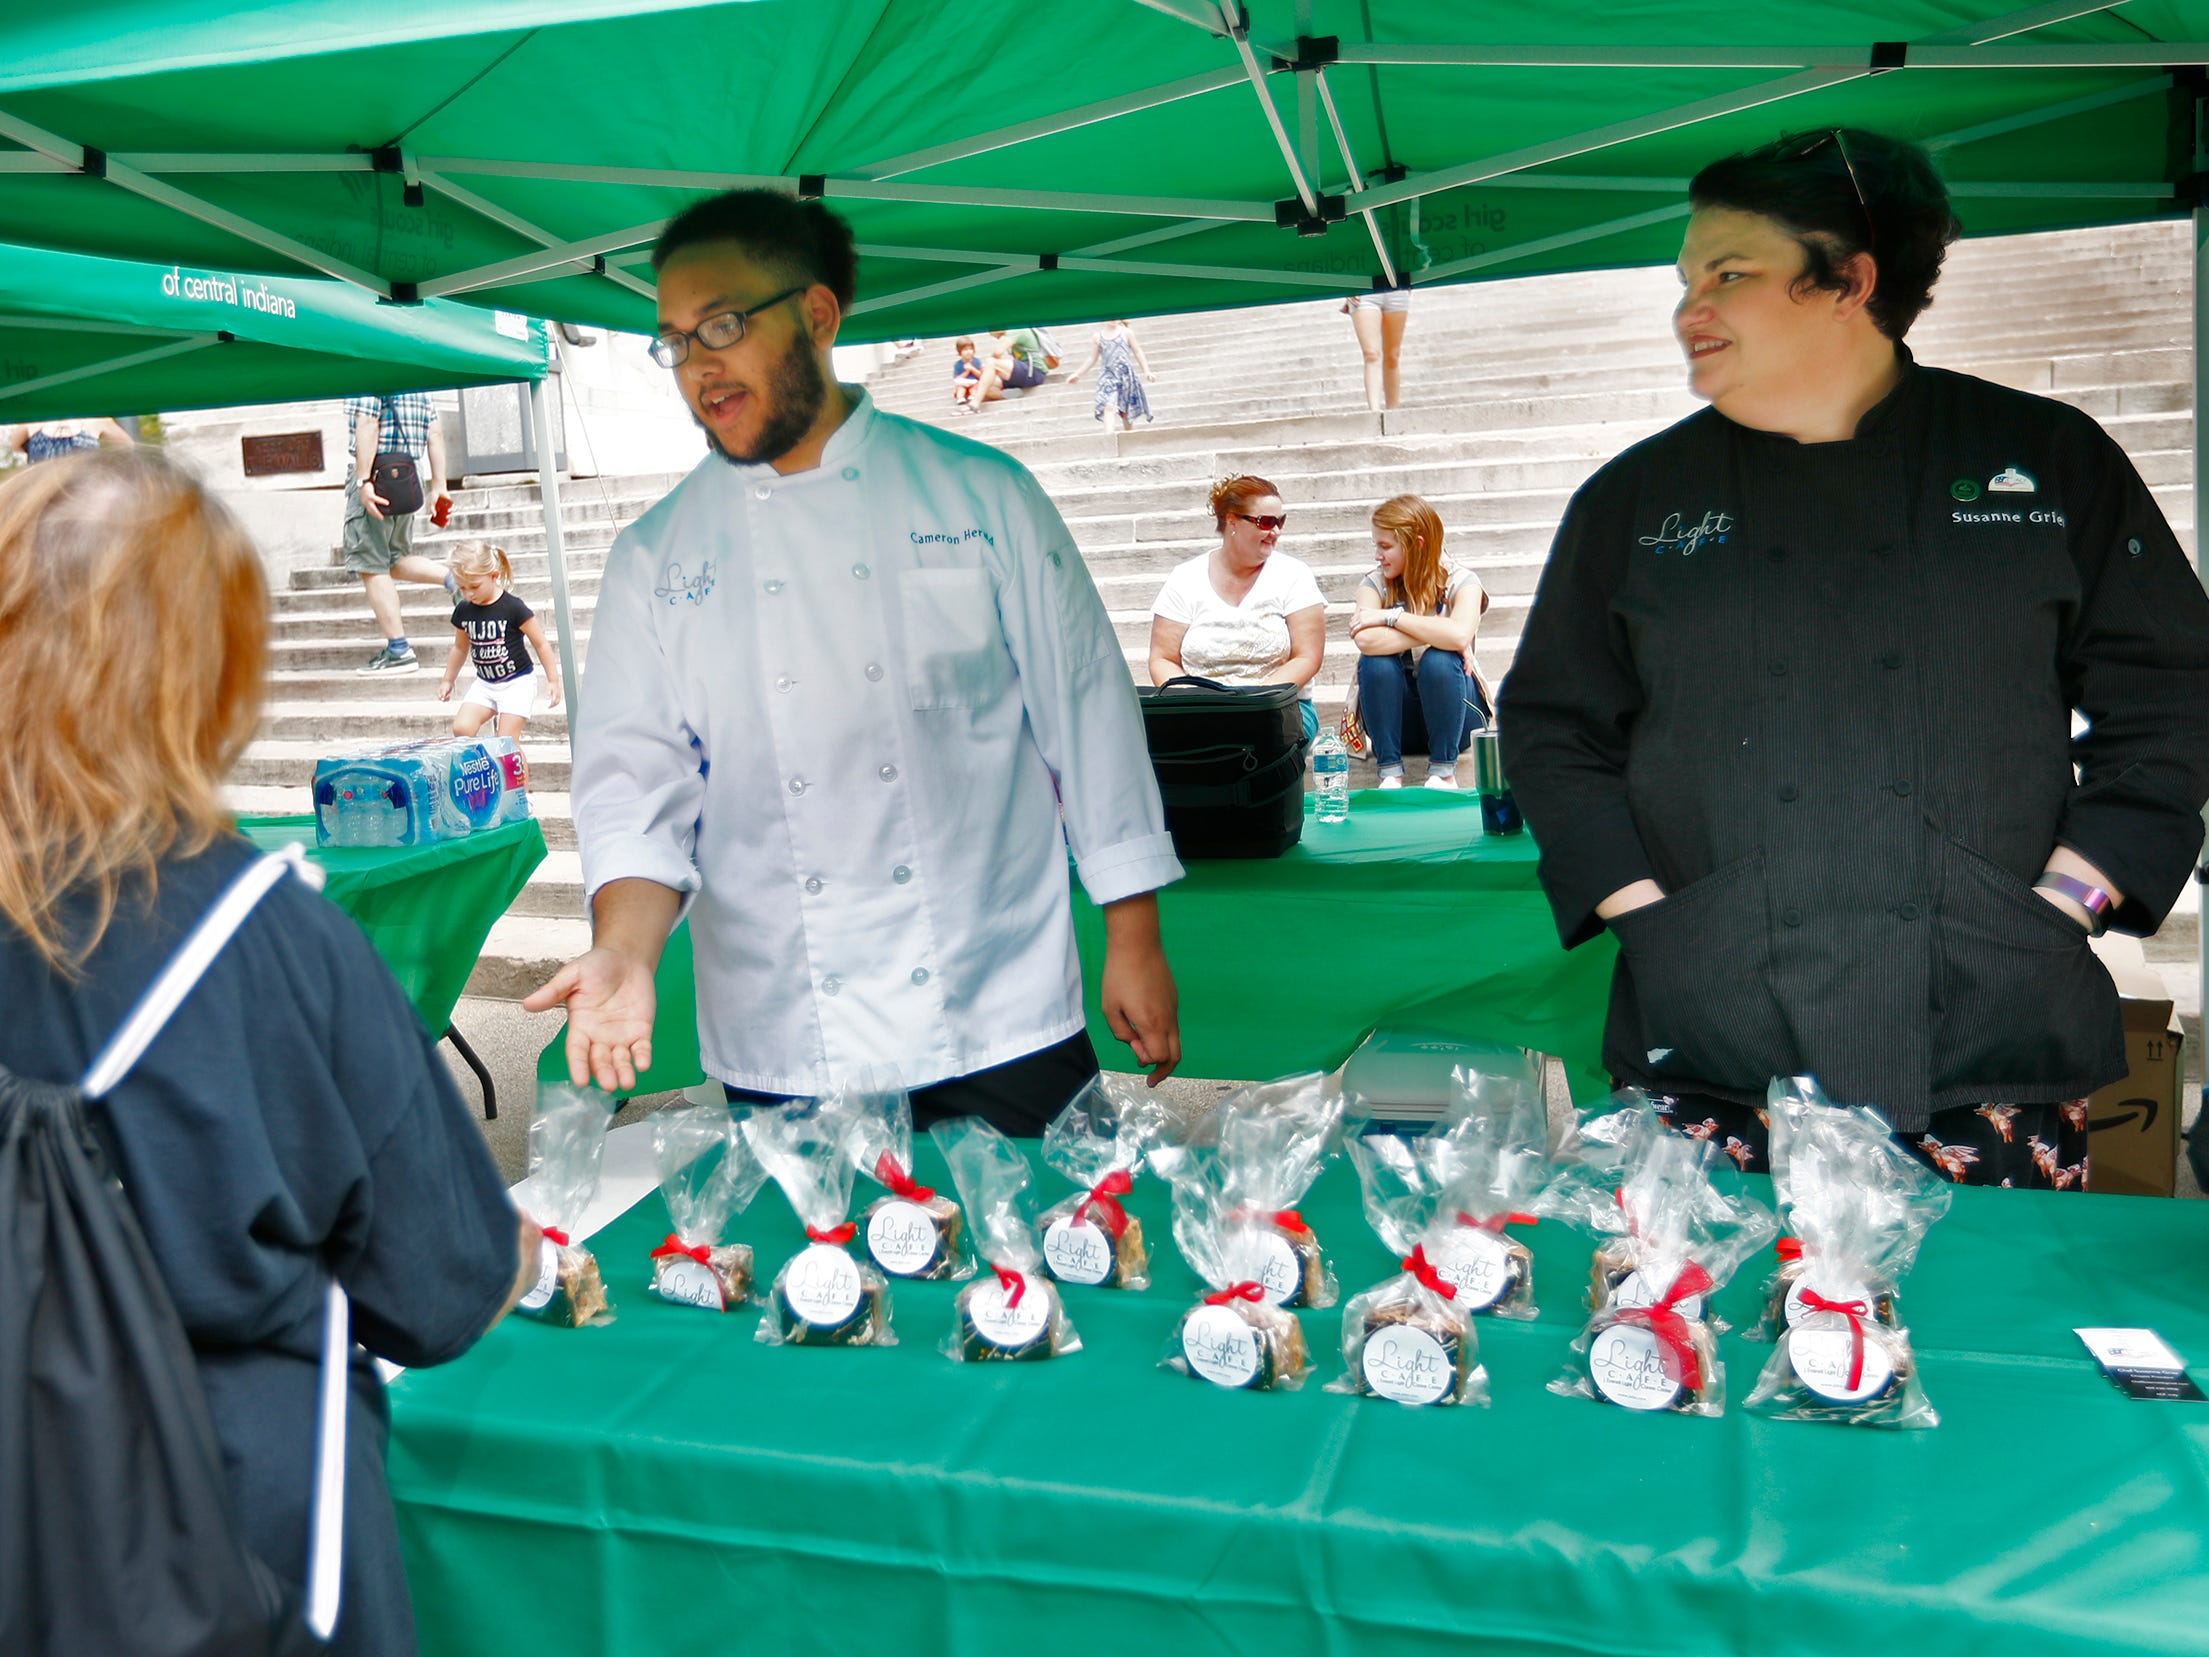 Cameron Herald, left, a student at J Everett Light Career Center, and Chef Susanne Grier hand out s'mores at their booth, during the Girl Scouts' S'mores on the Circle event, Friday, Aug. 10, 2018.  The event celebrated National S'mores Day.  Seven local chefs were featured, creating gourmet s'mores treats, sold as a fundraiser.  Proceeds go for financial assistance for Girl Scouts, helping all girls who want to be a girl scout participating in hands-on adventures and STEM activities.